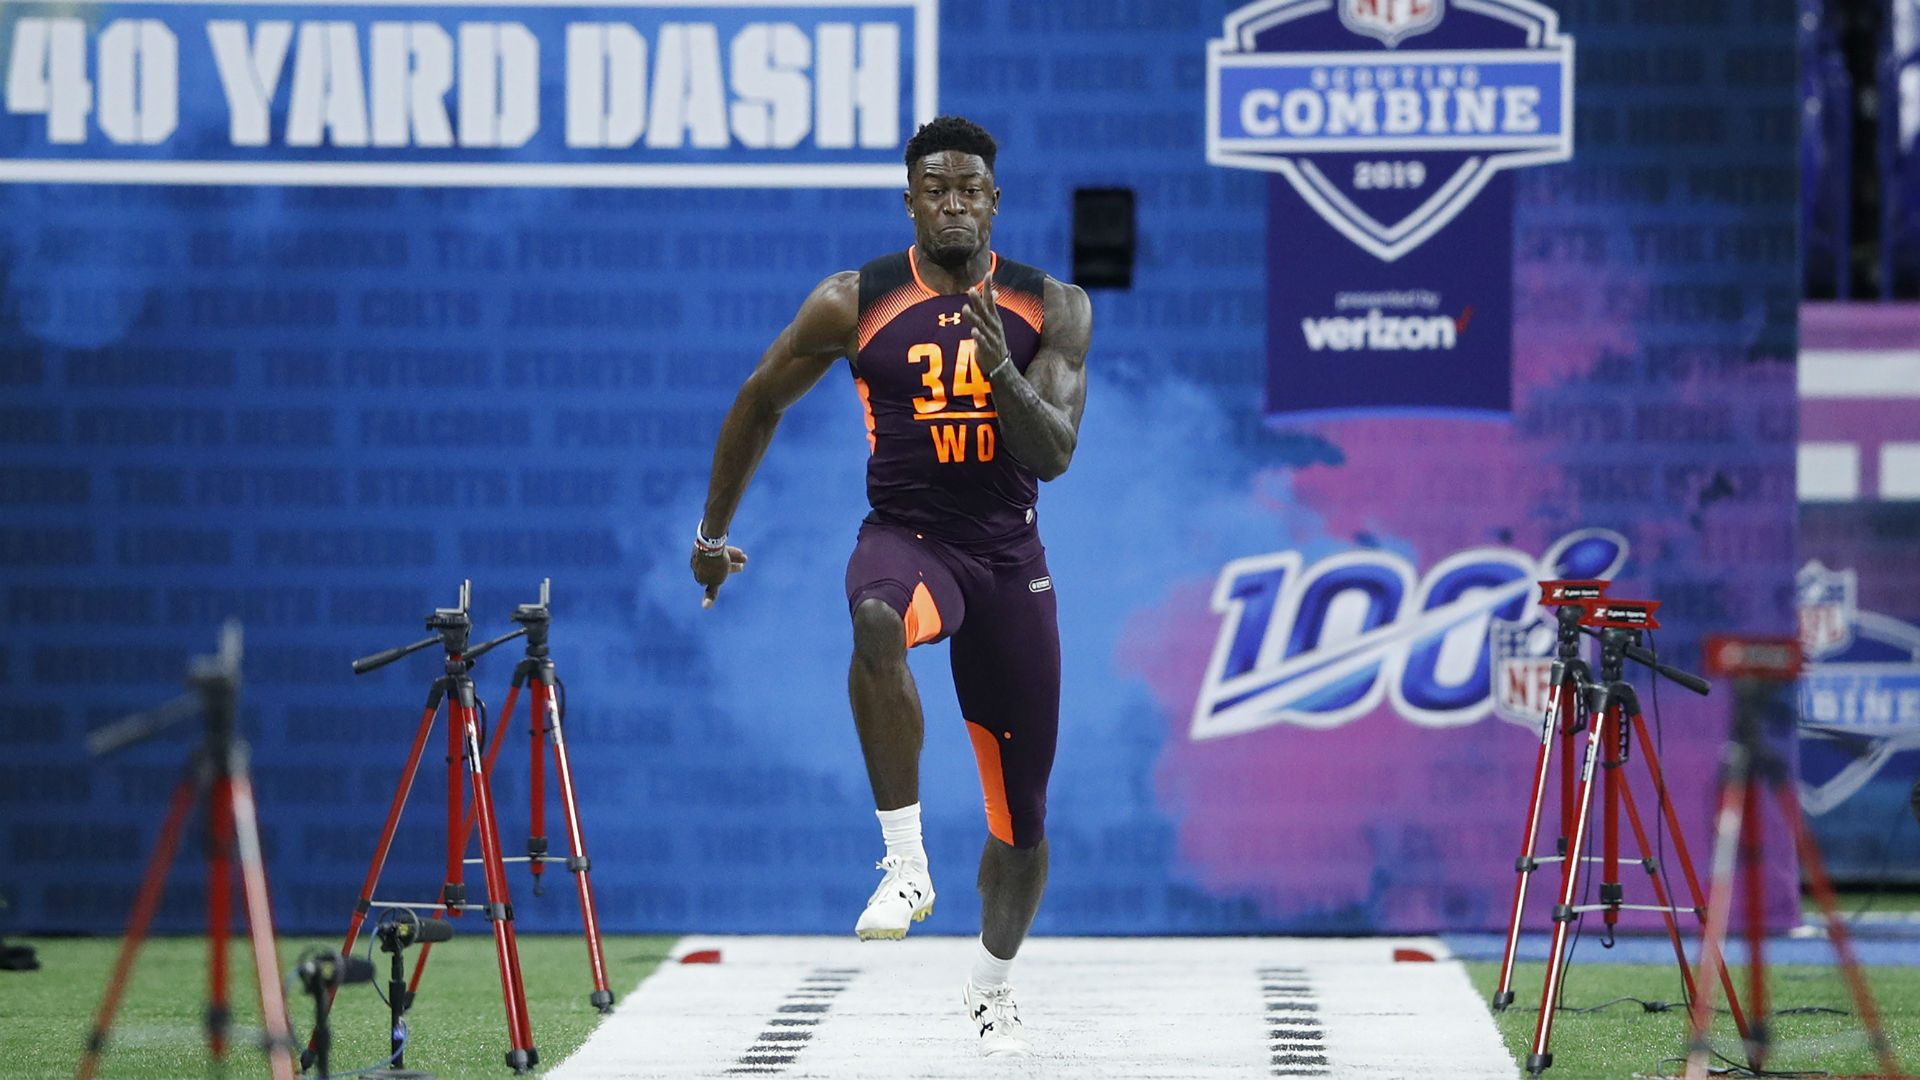 D K Metcalf S Nfl Combine Performance Historic 40 Time Turned Seahawks Wr Into A Star Sporting News